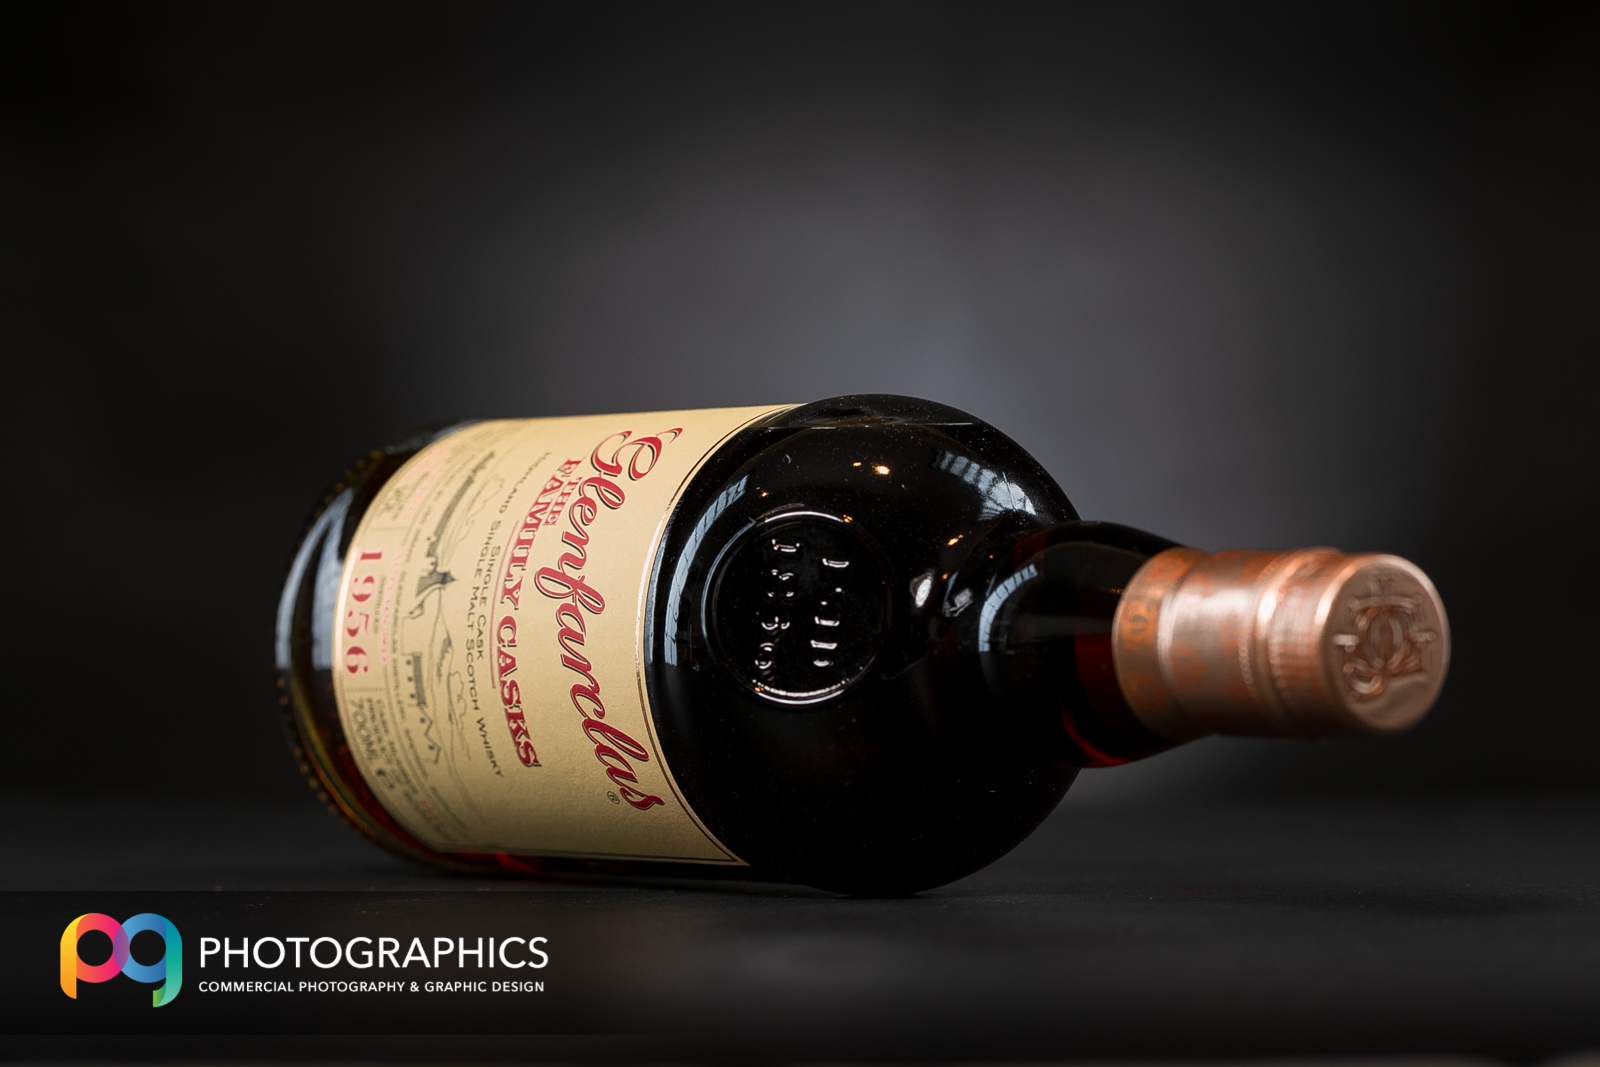 product-whisky-photography-glasgow-edinburgh-scotland-8.jpg